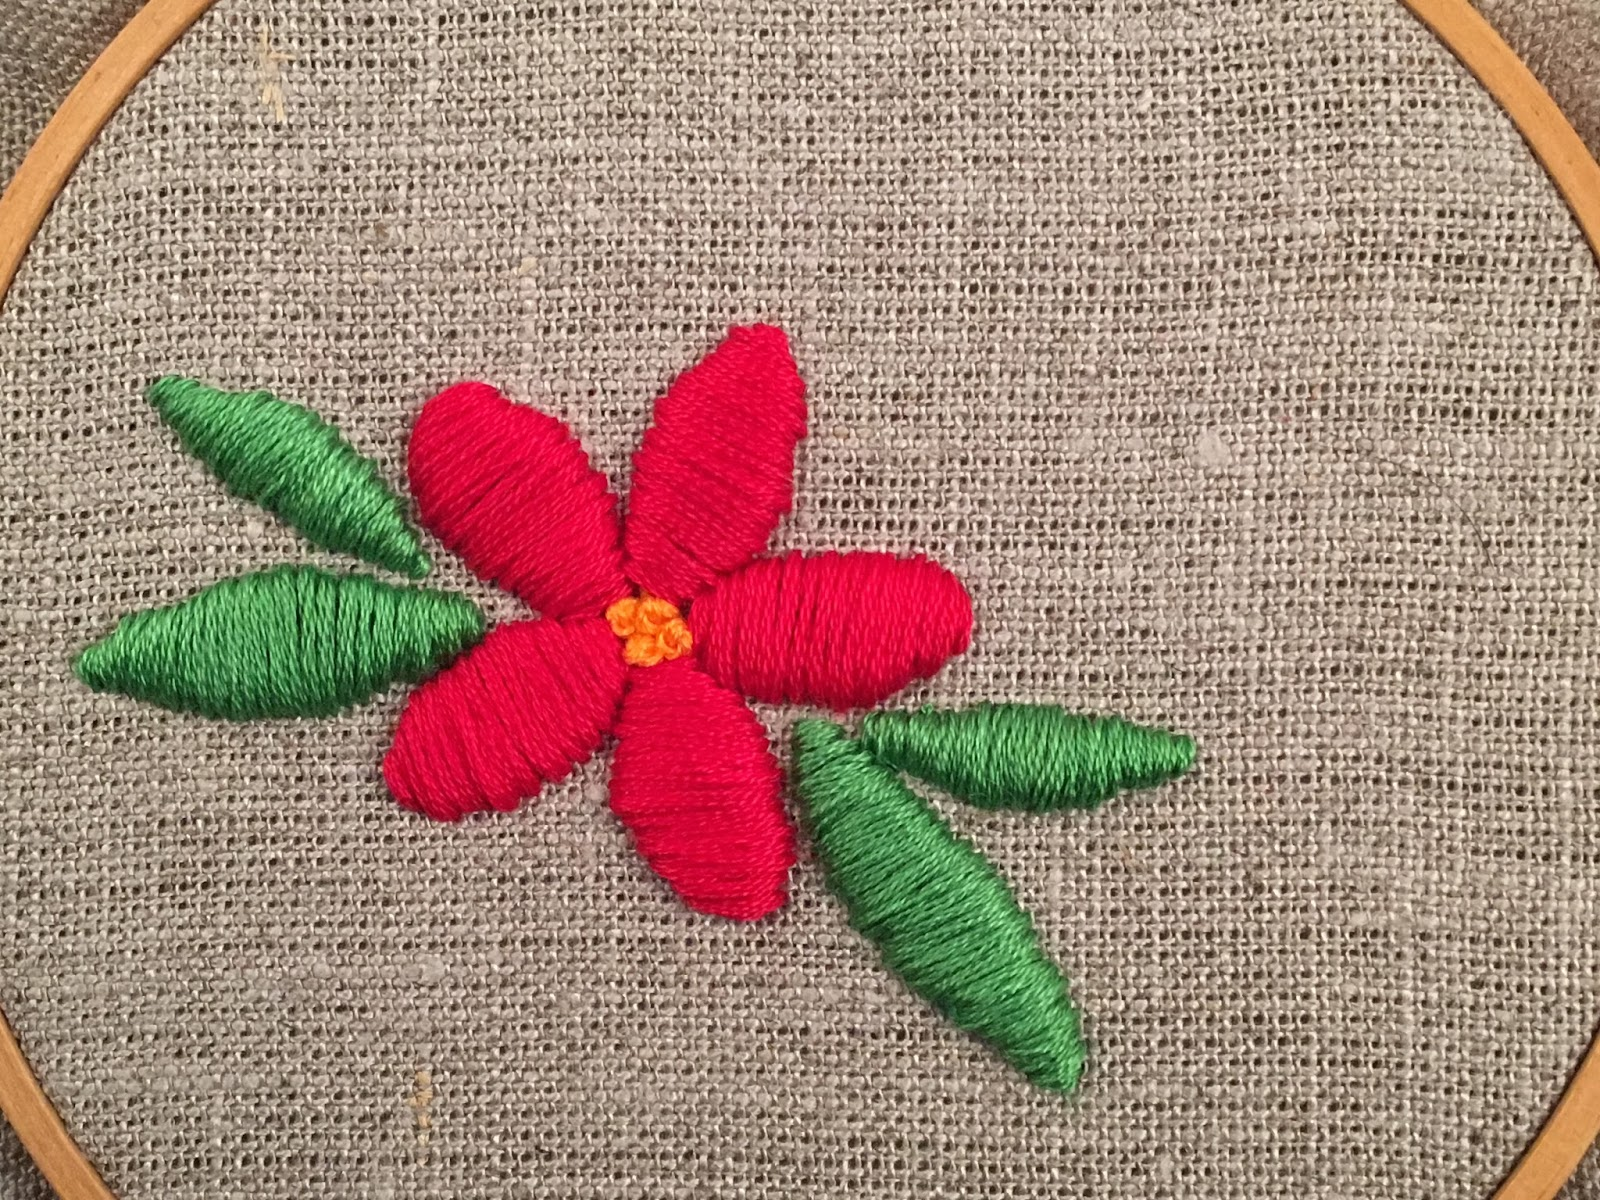 Feeling Stitchy Mooshiestitch Monday Padded Satin Stitch Flower